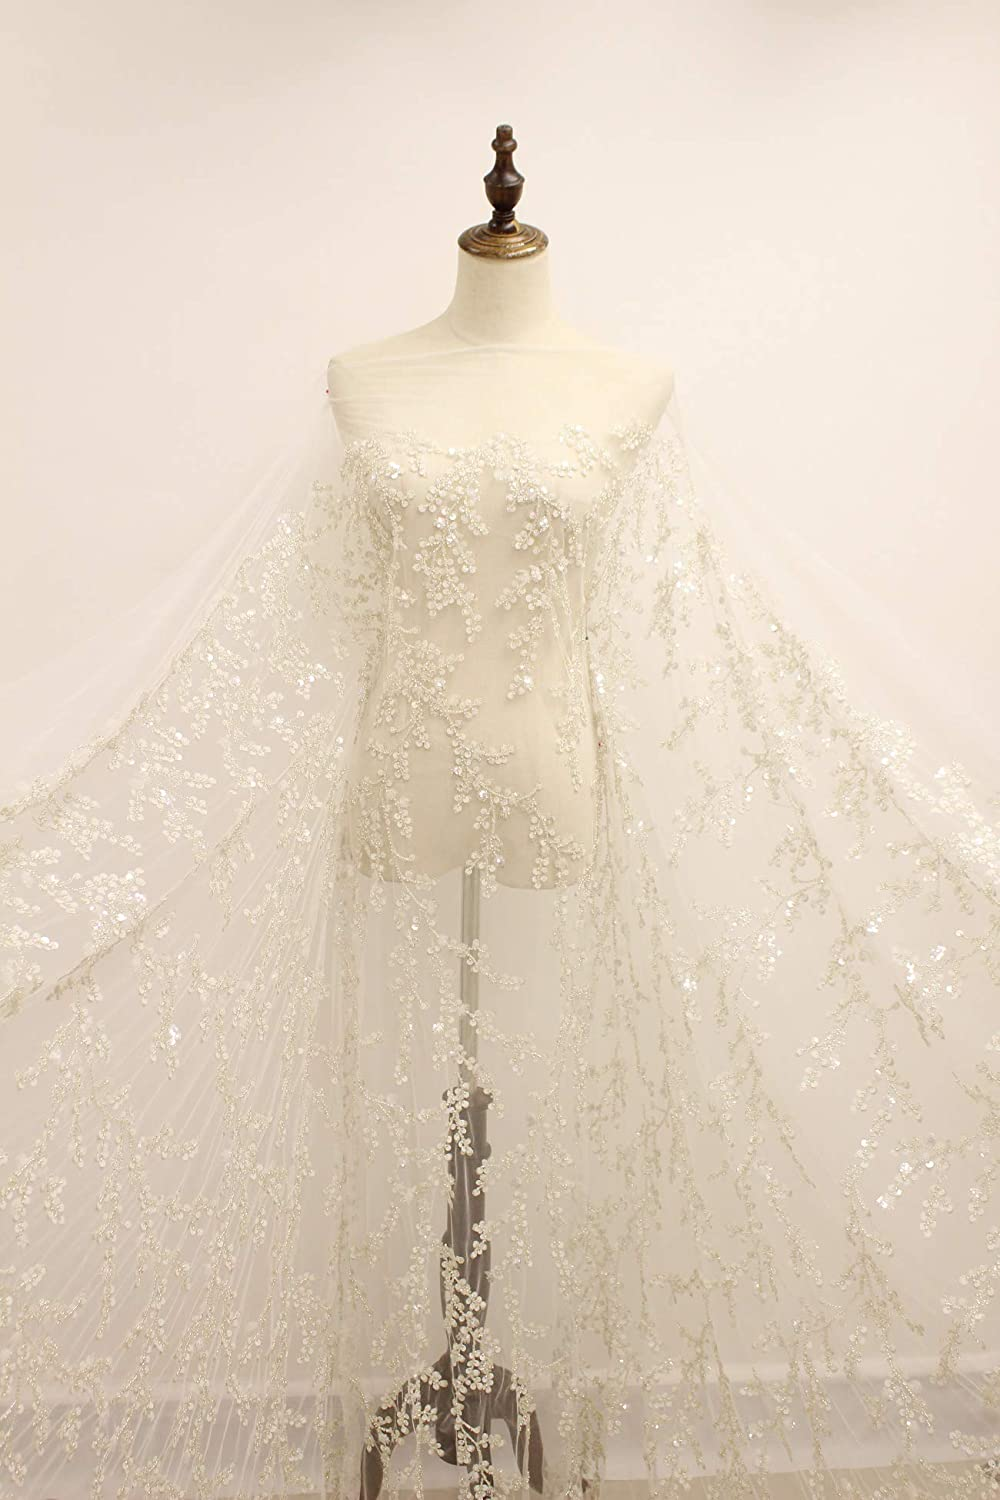 5yards new off white heavy beaded African French Lace Fabric with High Quality Tulle embroidery Lace Fabric